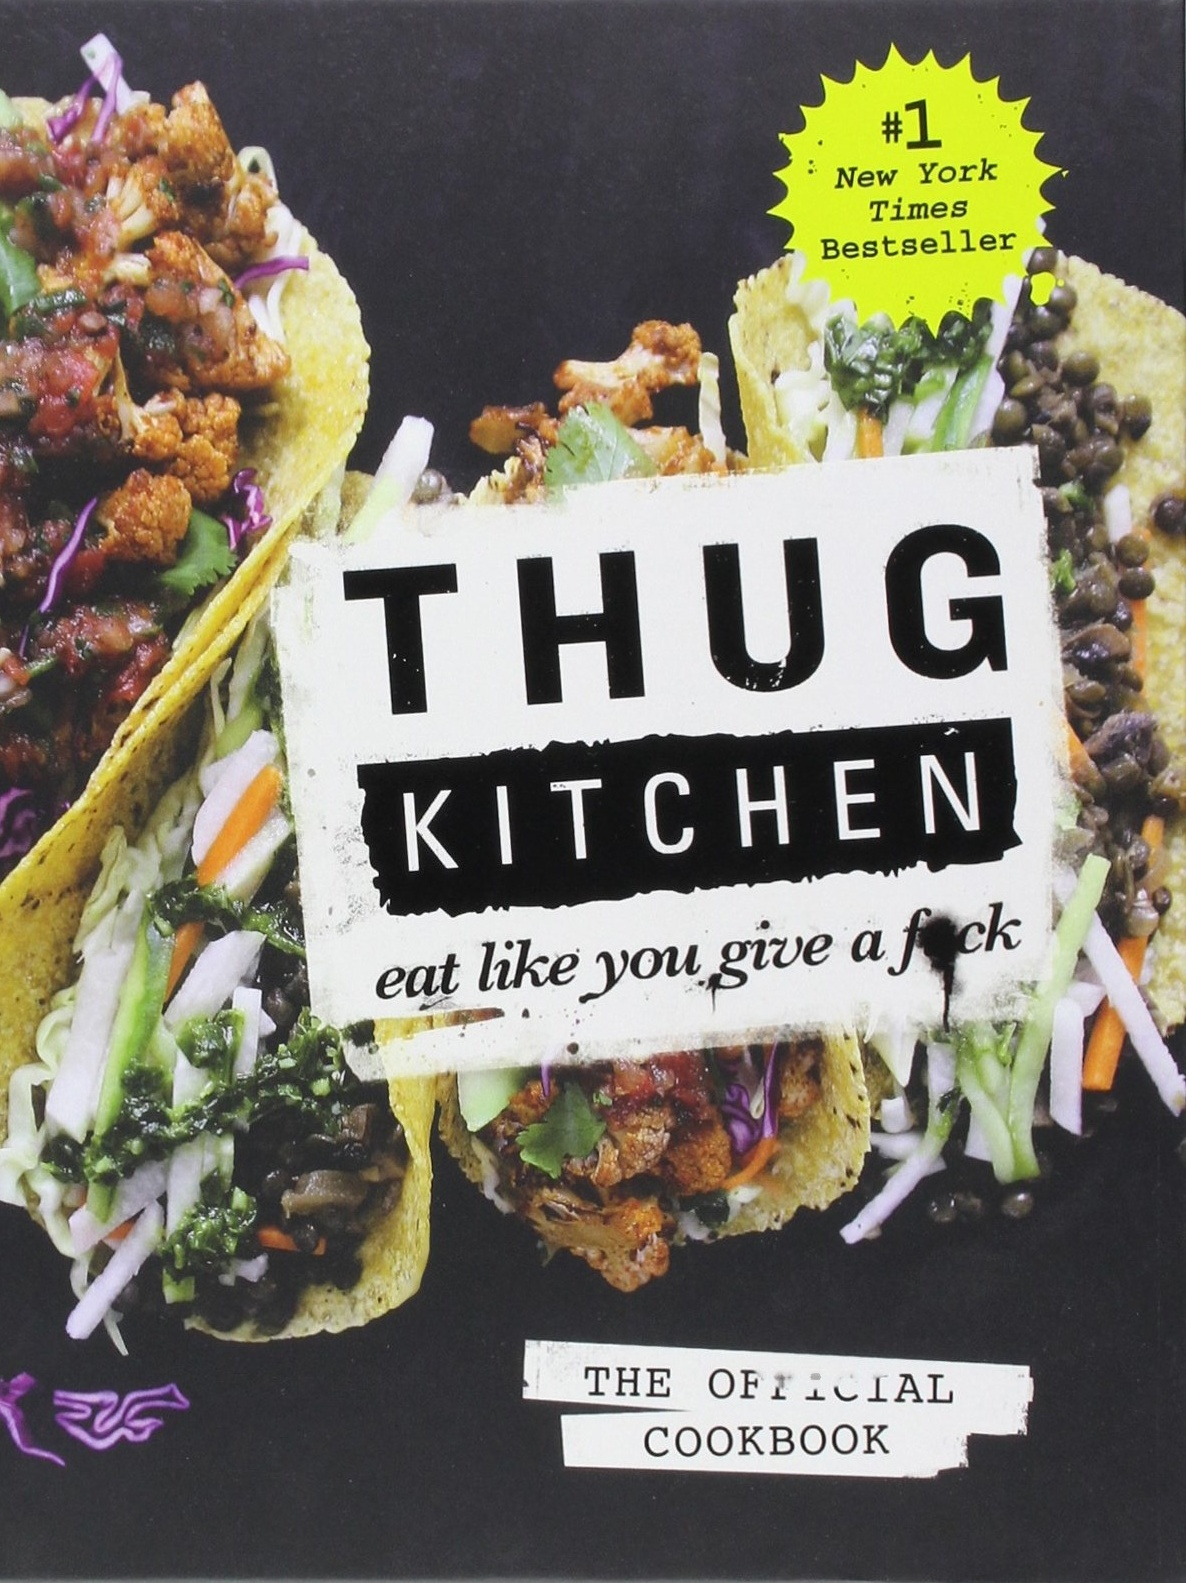 Best Cookbook Covers ~ Deliciously designed cookbook covers designs